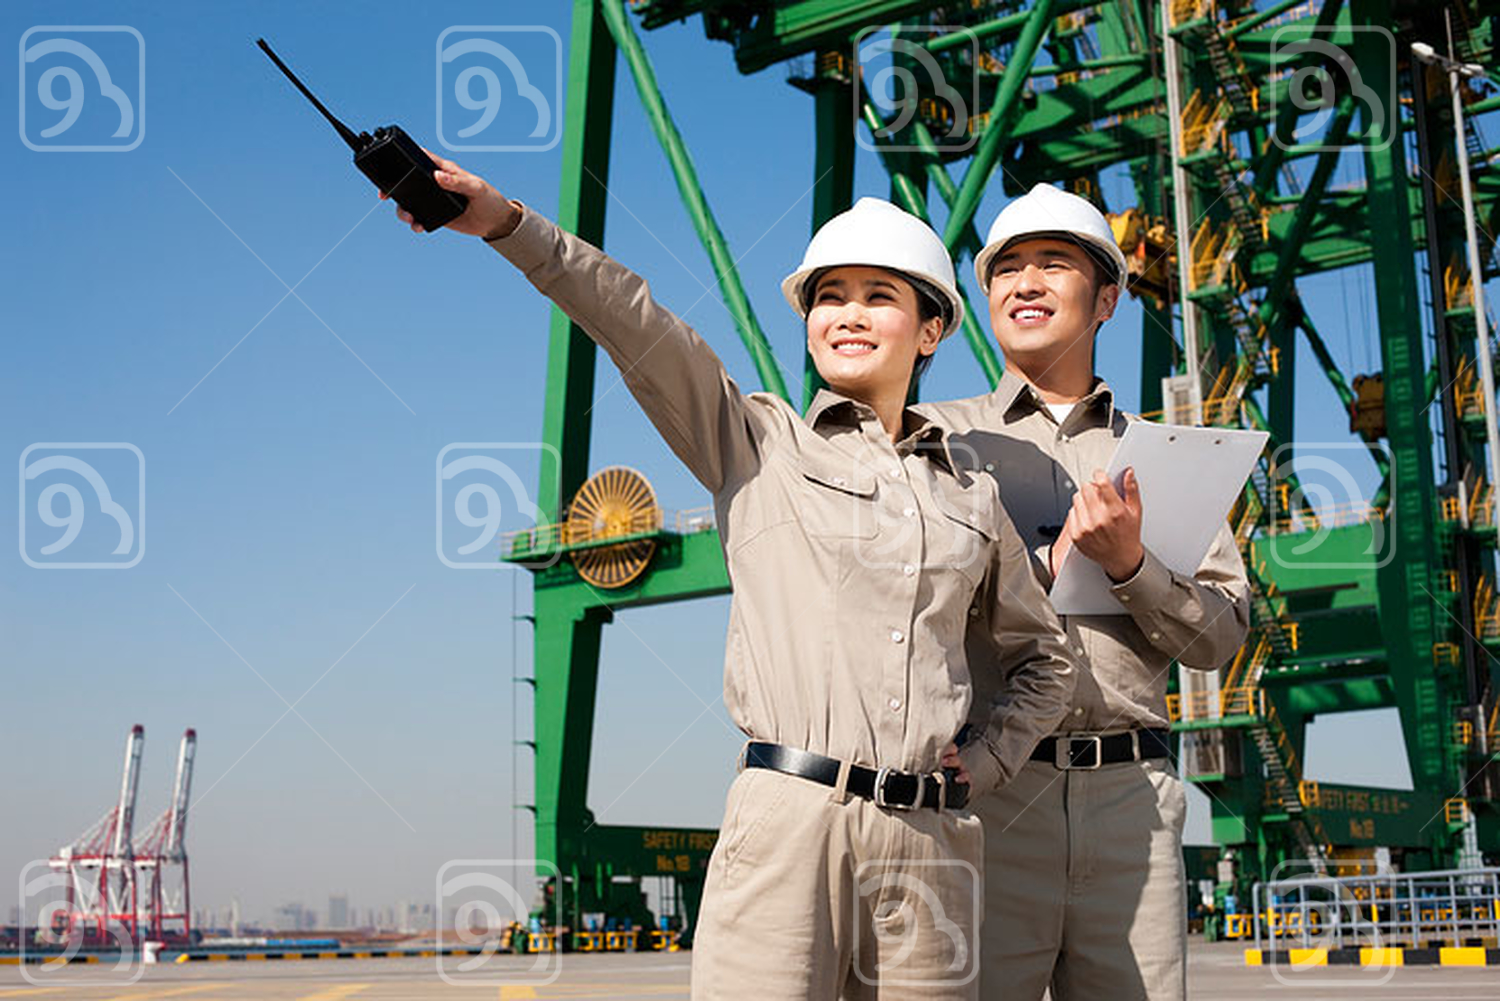 Chinese shipping industry workers pointing with walkie-talkie